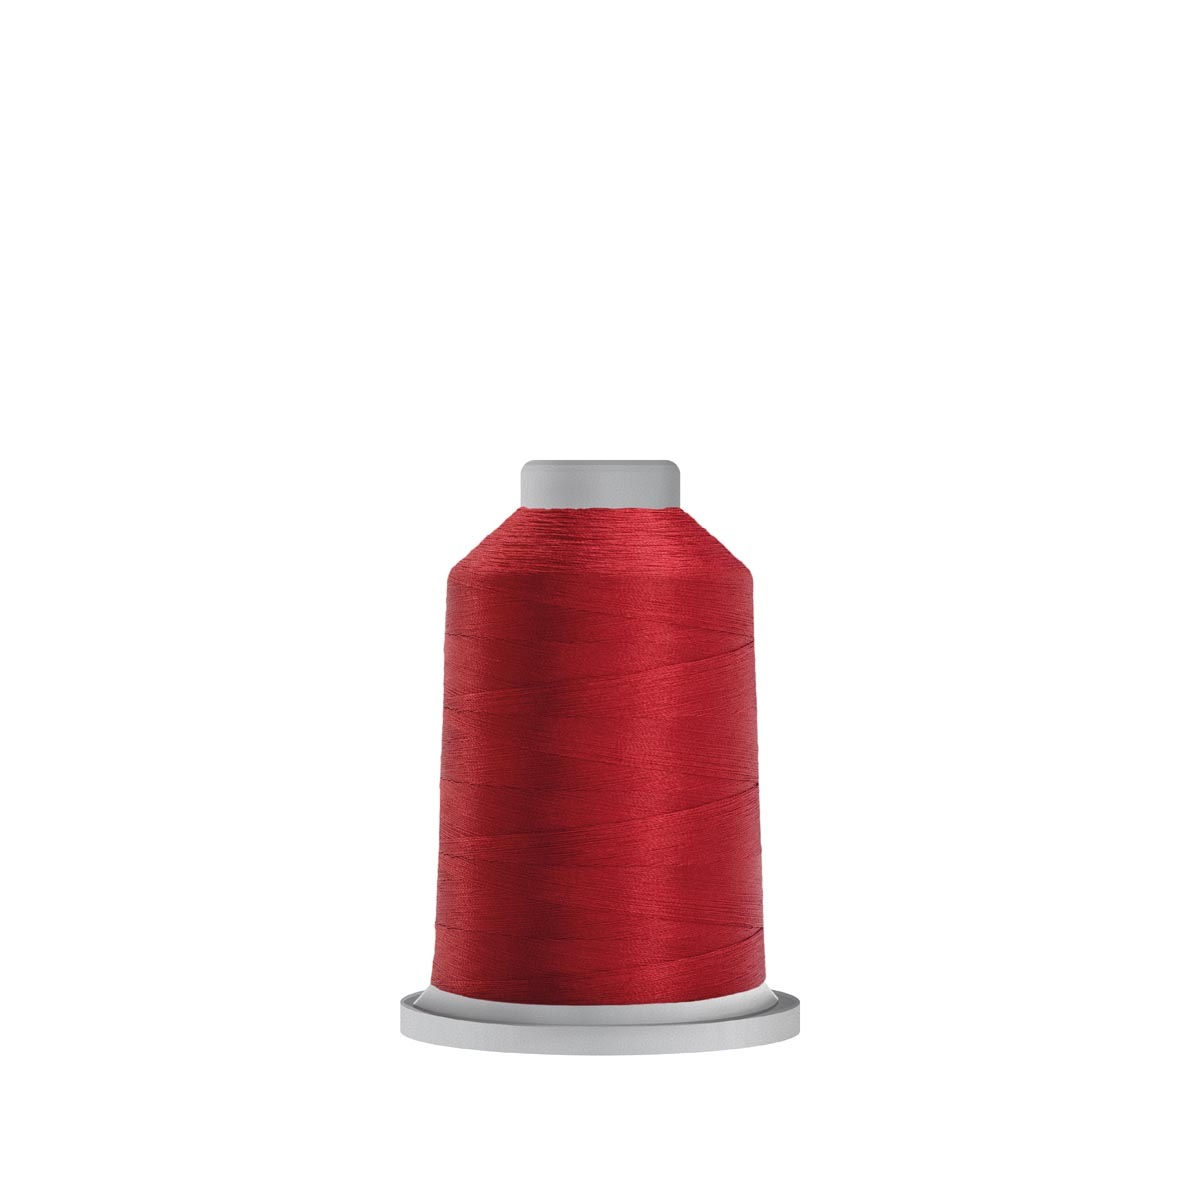 Glide Trilobal Polyester No. 40 Thread - Imperial Red